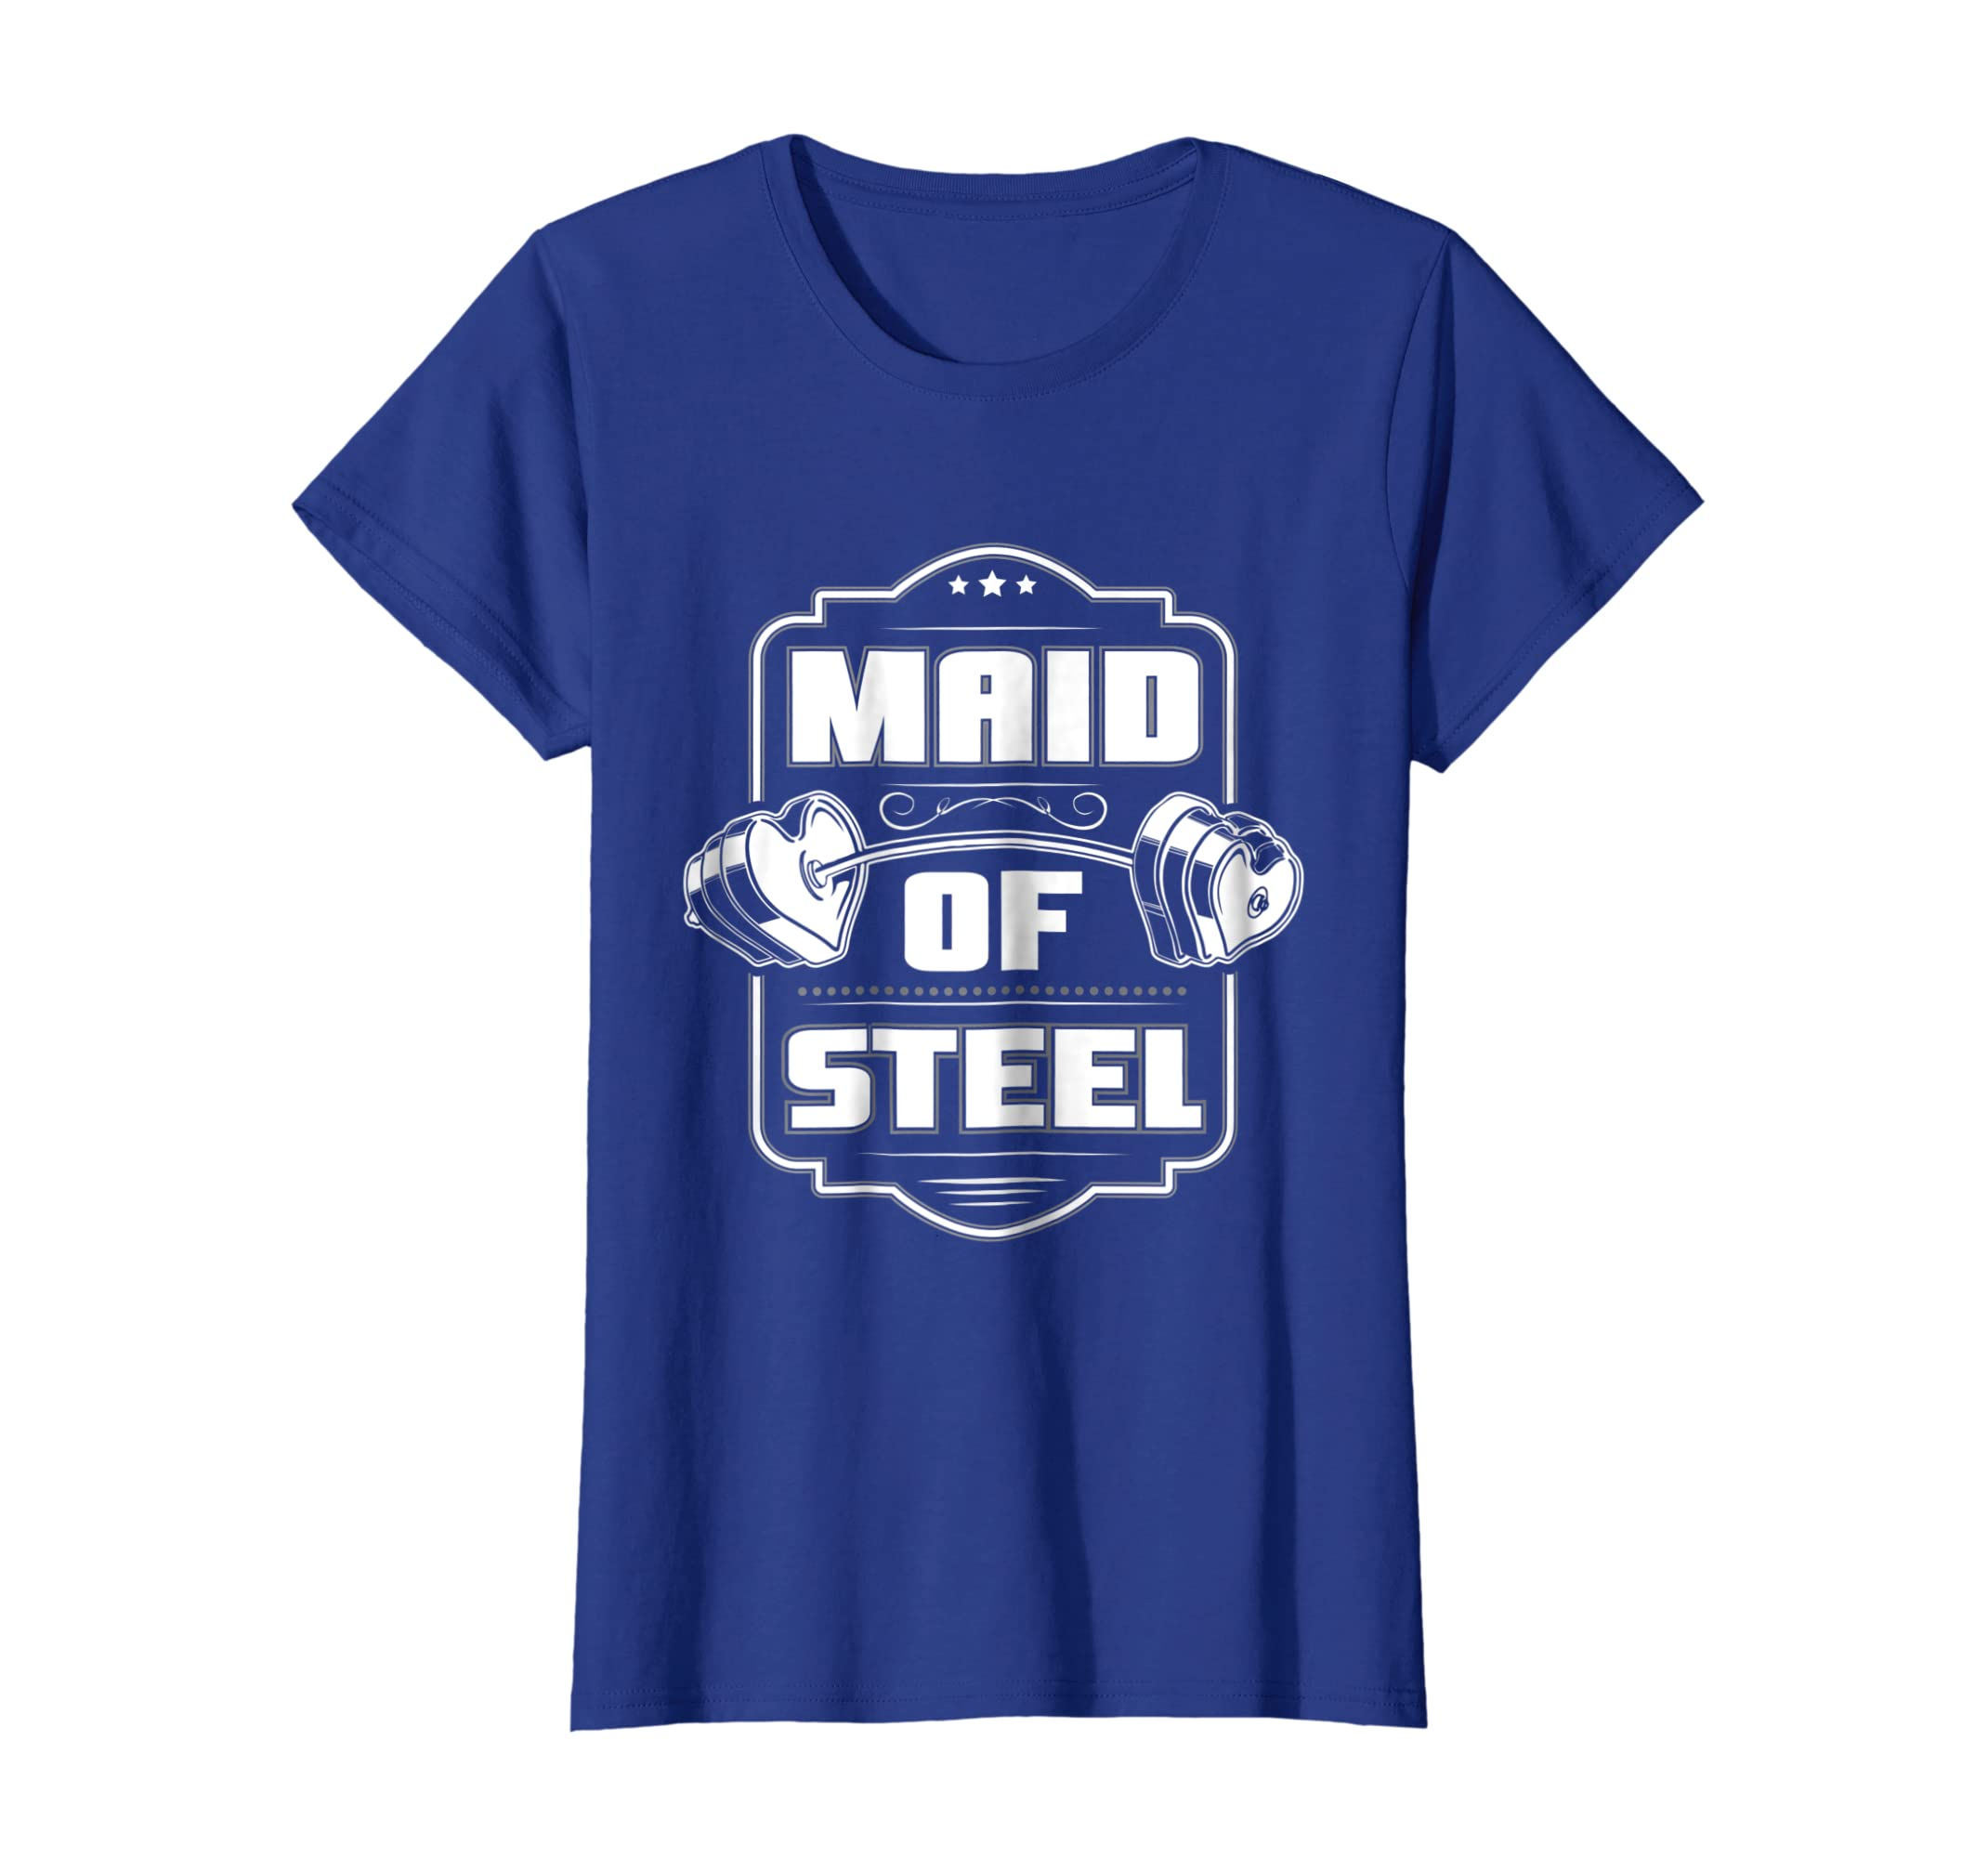 d4d640a3 Amazon.com: Maid of steel, cool workout t-shirt for women who train hard:  Clothing